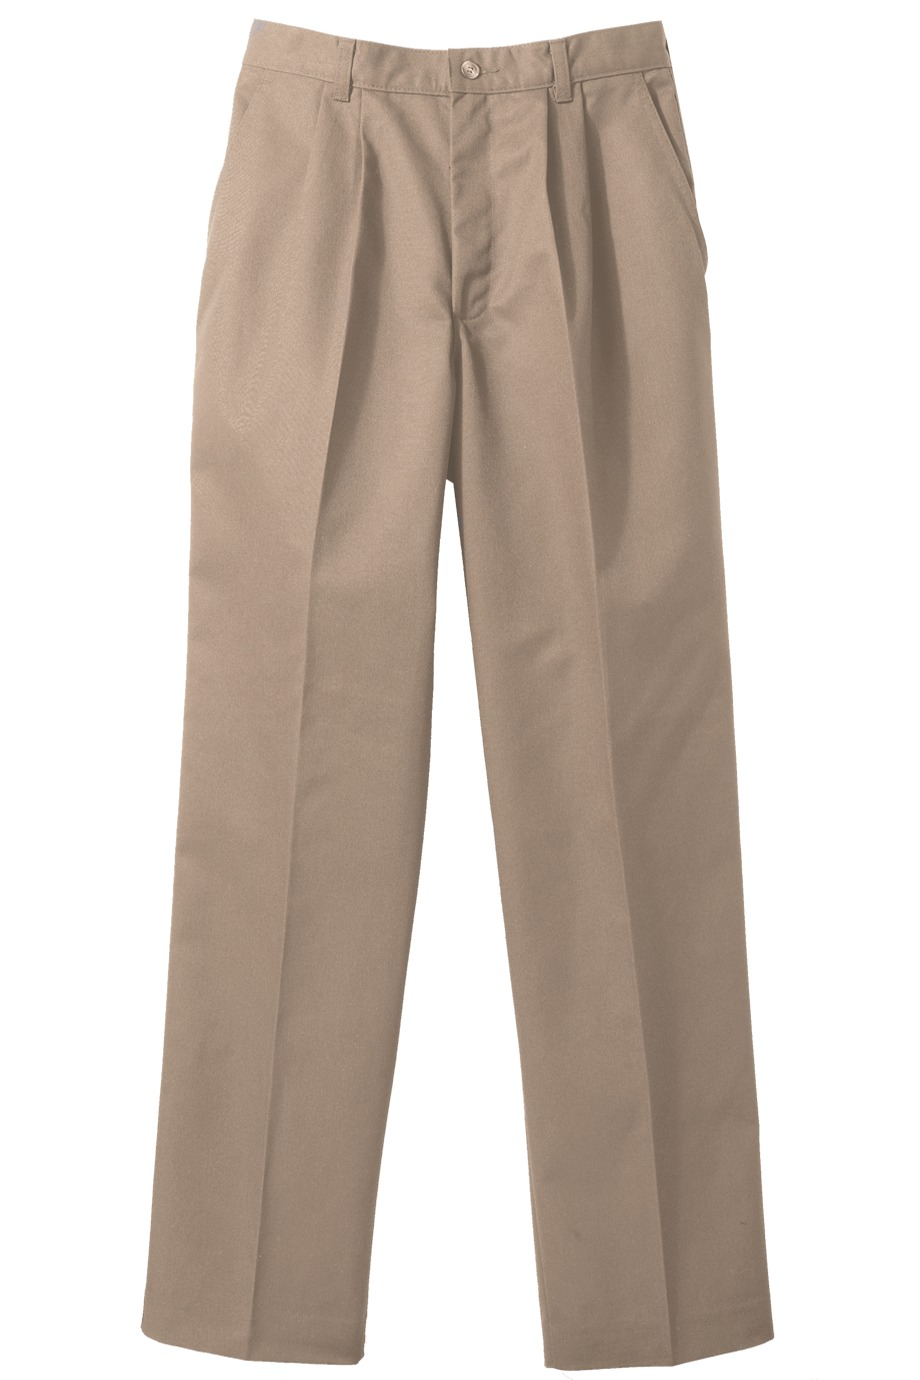 Edwards Garment 8679 - Women's Blended Chino Pleated ...